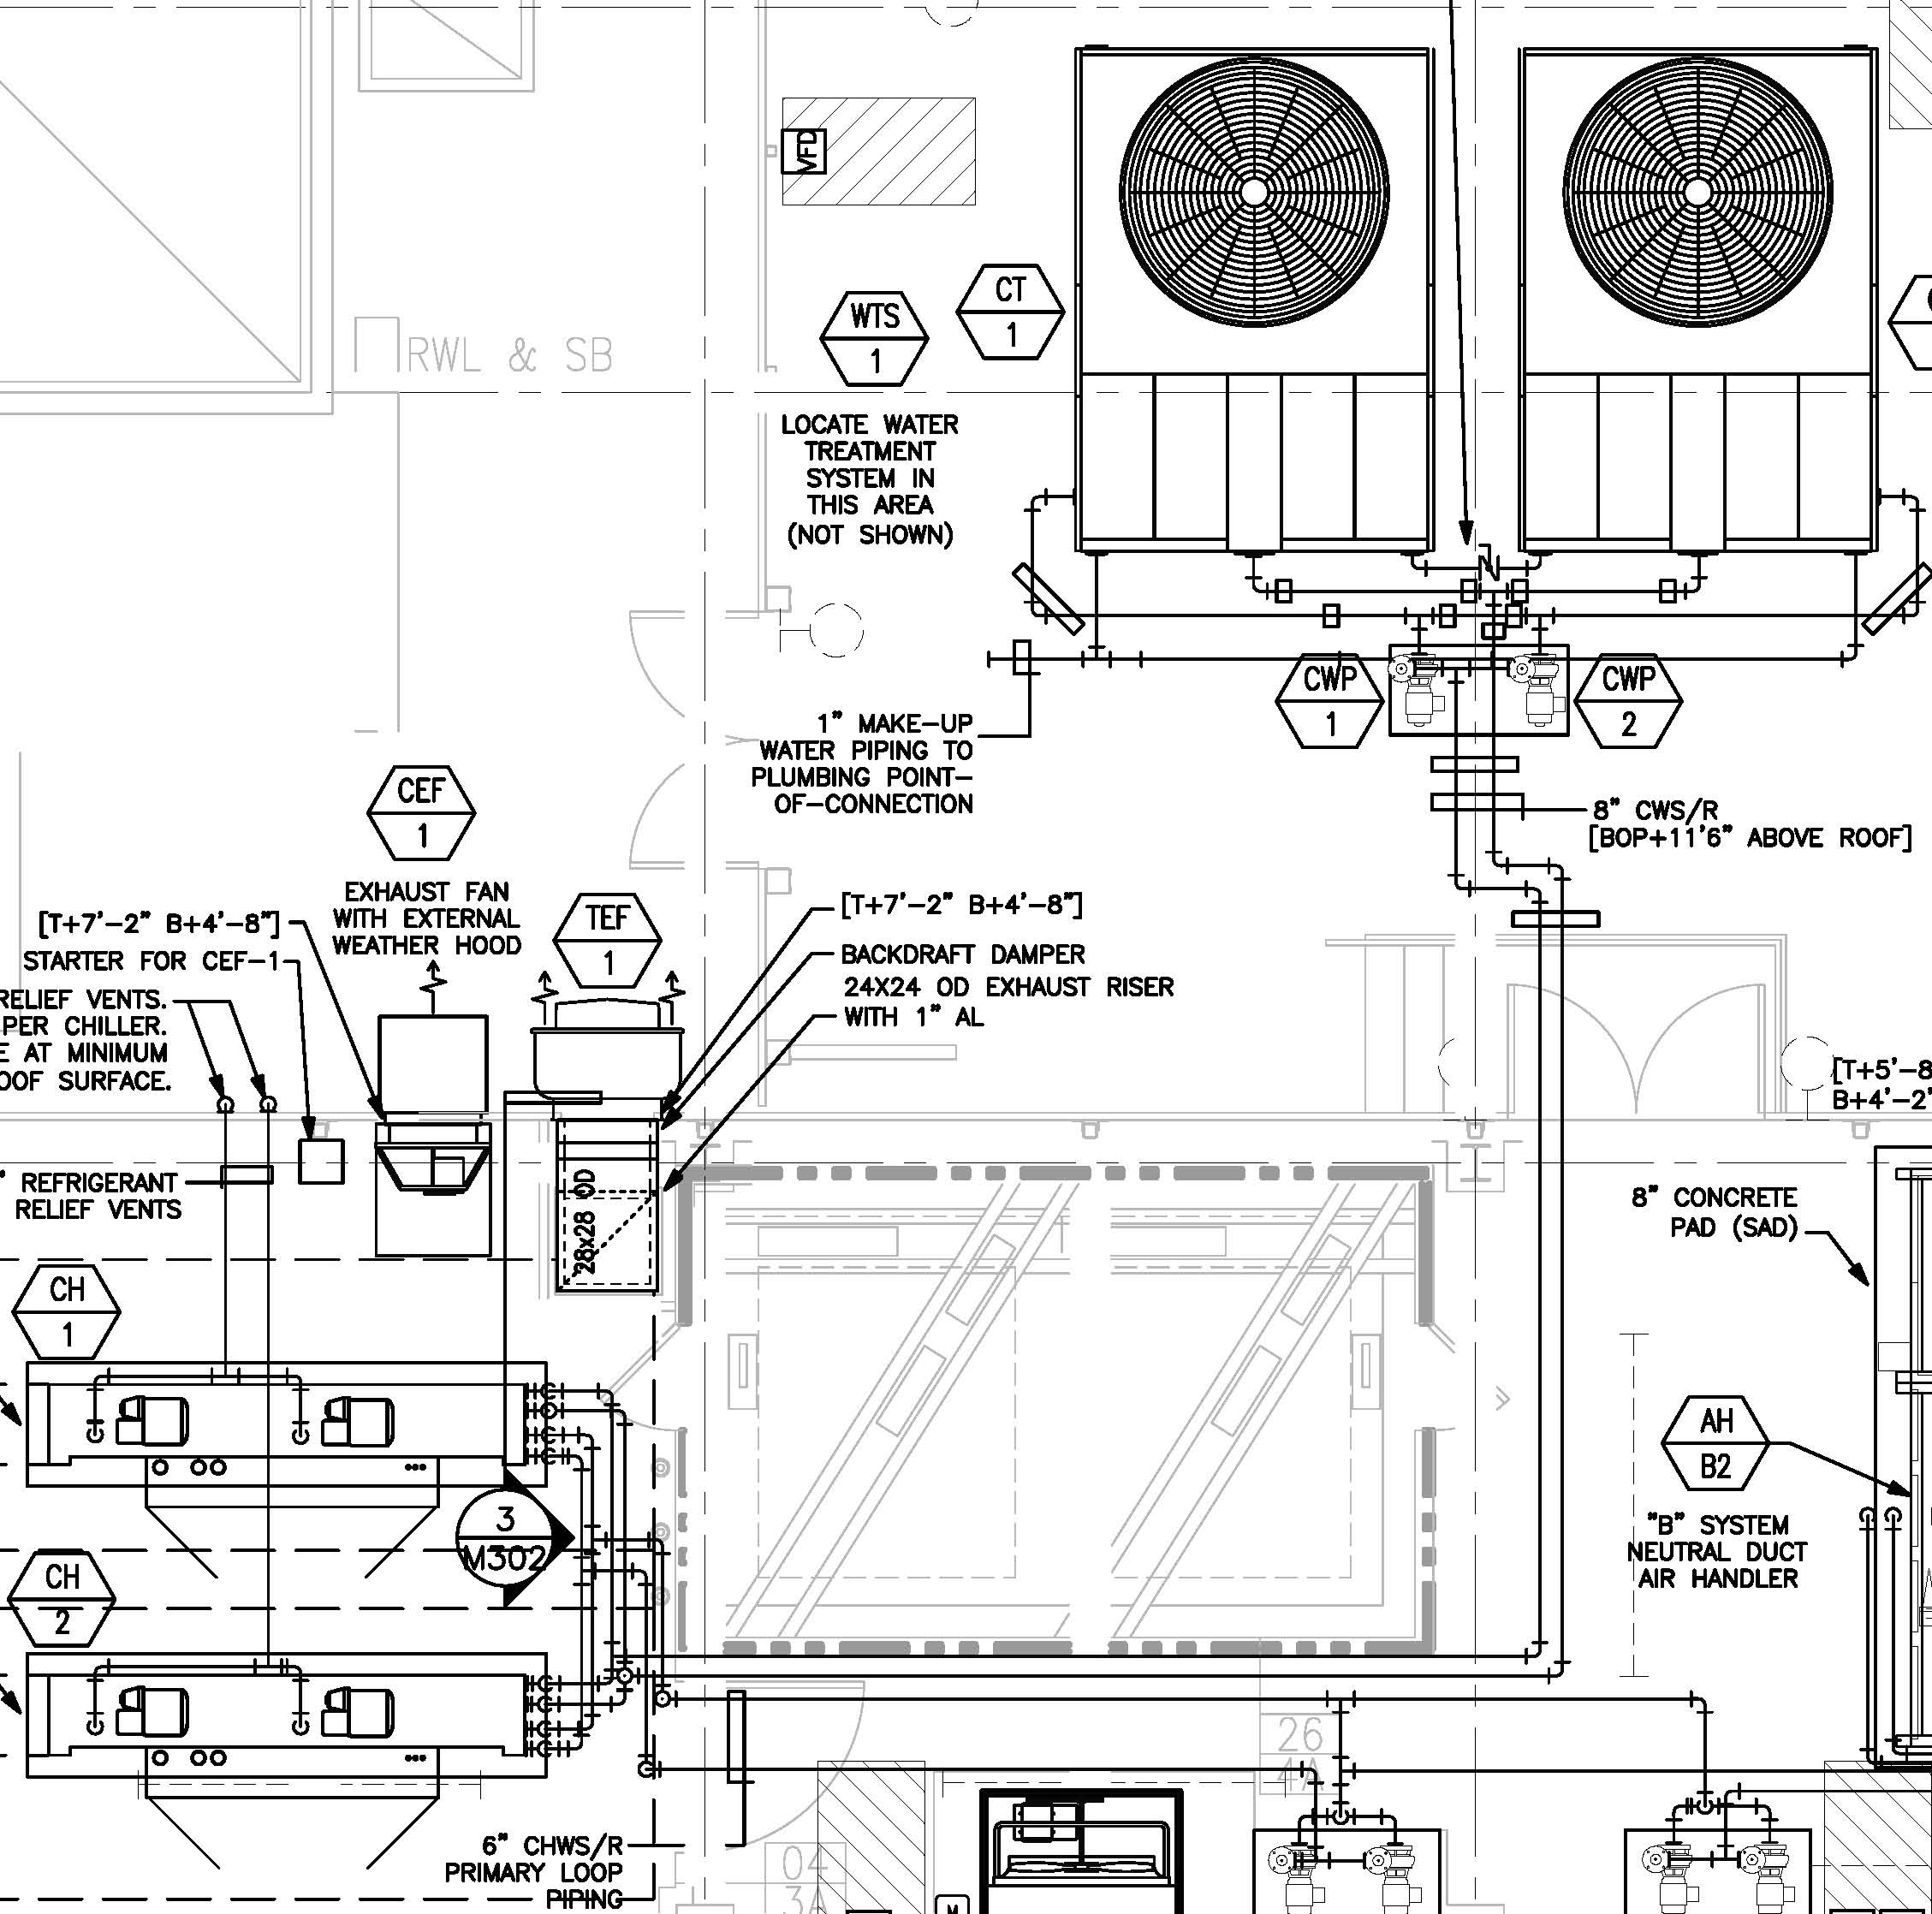 medium resolution of condensing unit diagram chiller systems wiring diagram for youchiller wiring diagram 5